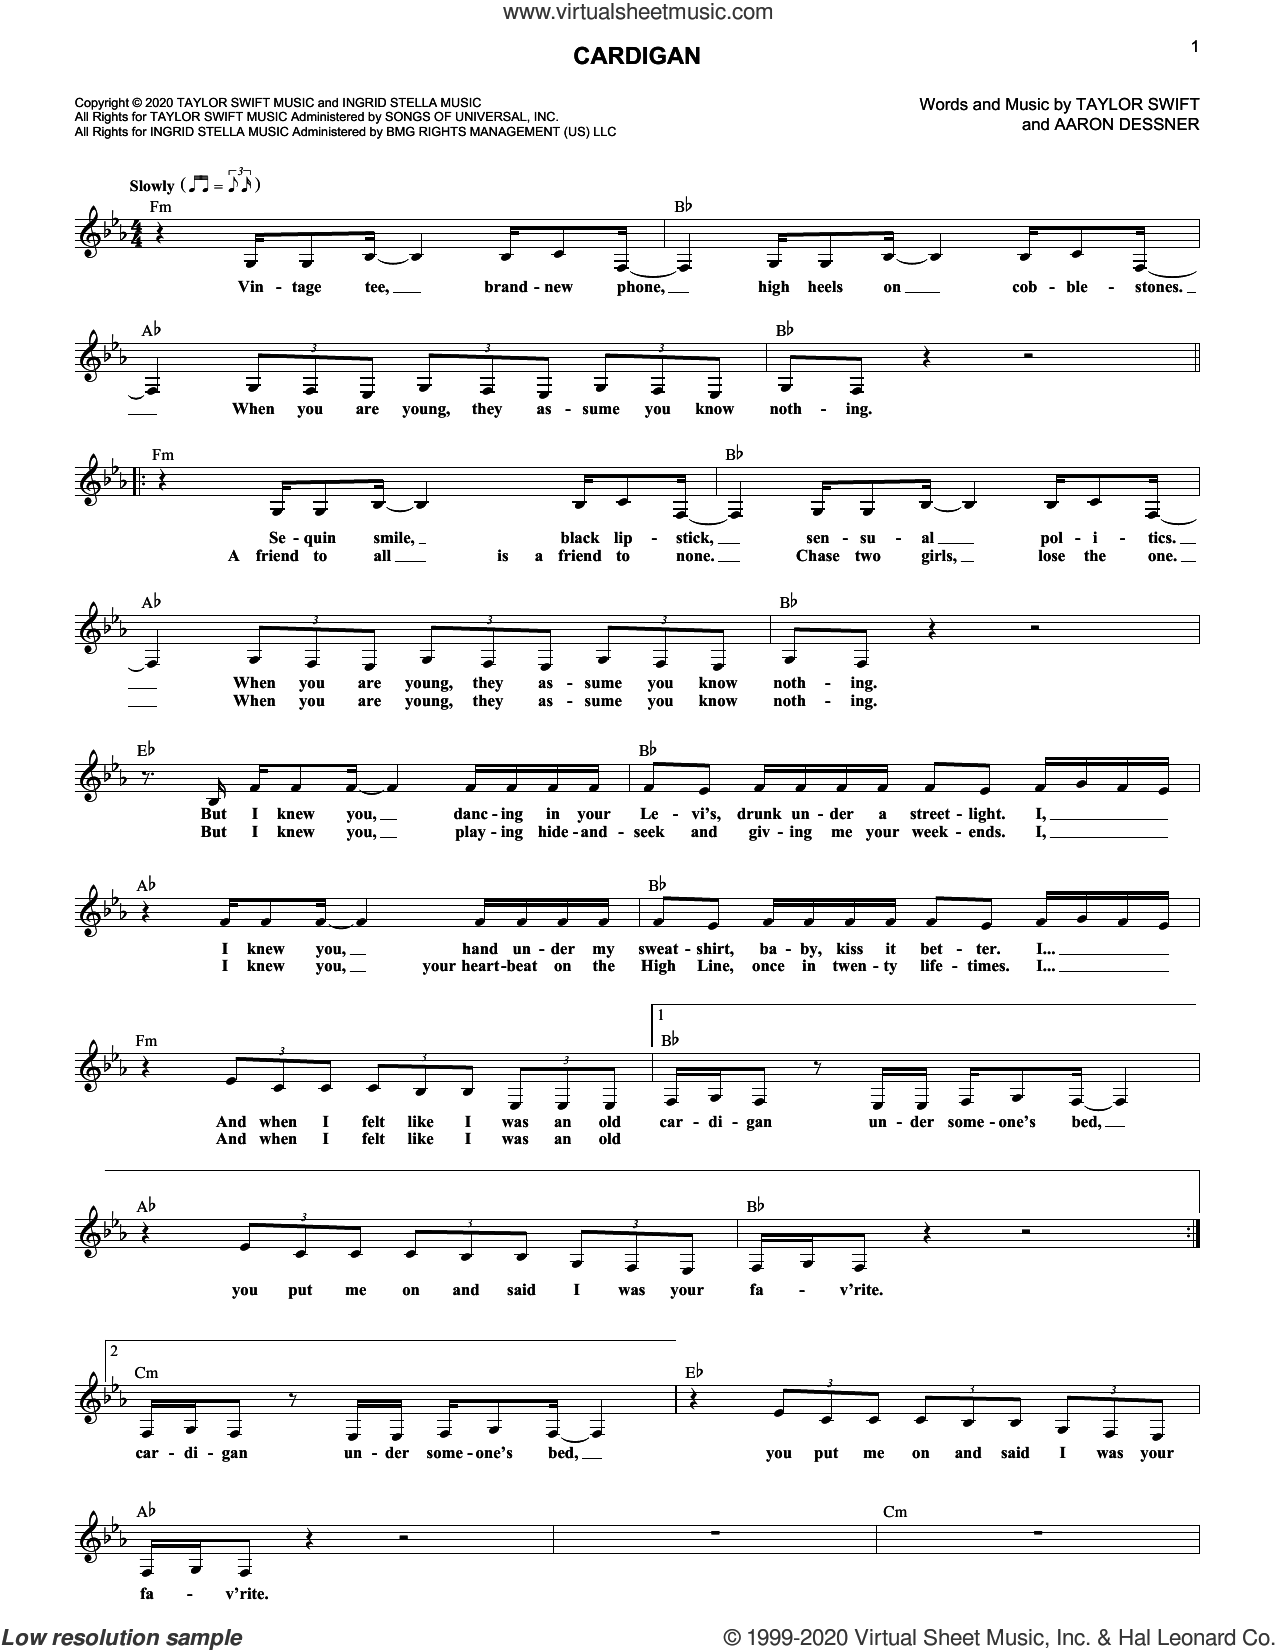 cardigan sheet music for voice and other instruments (fake book) by Taylor Swift and Aaron Dessner, intermediate skill level